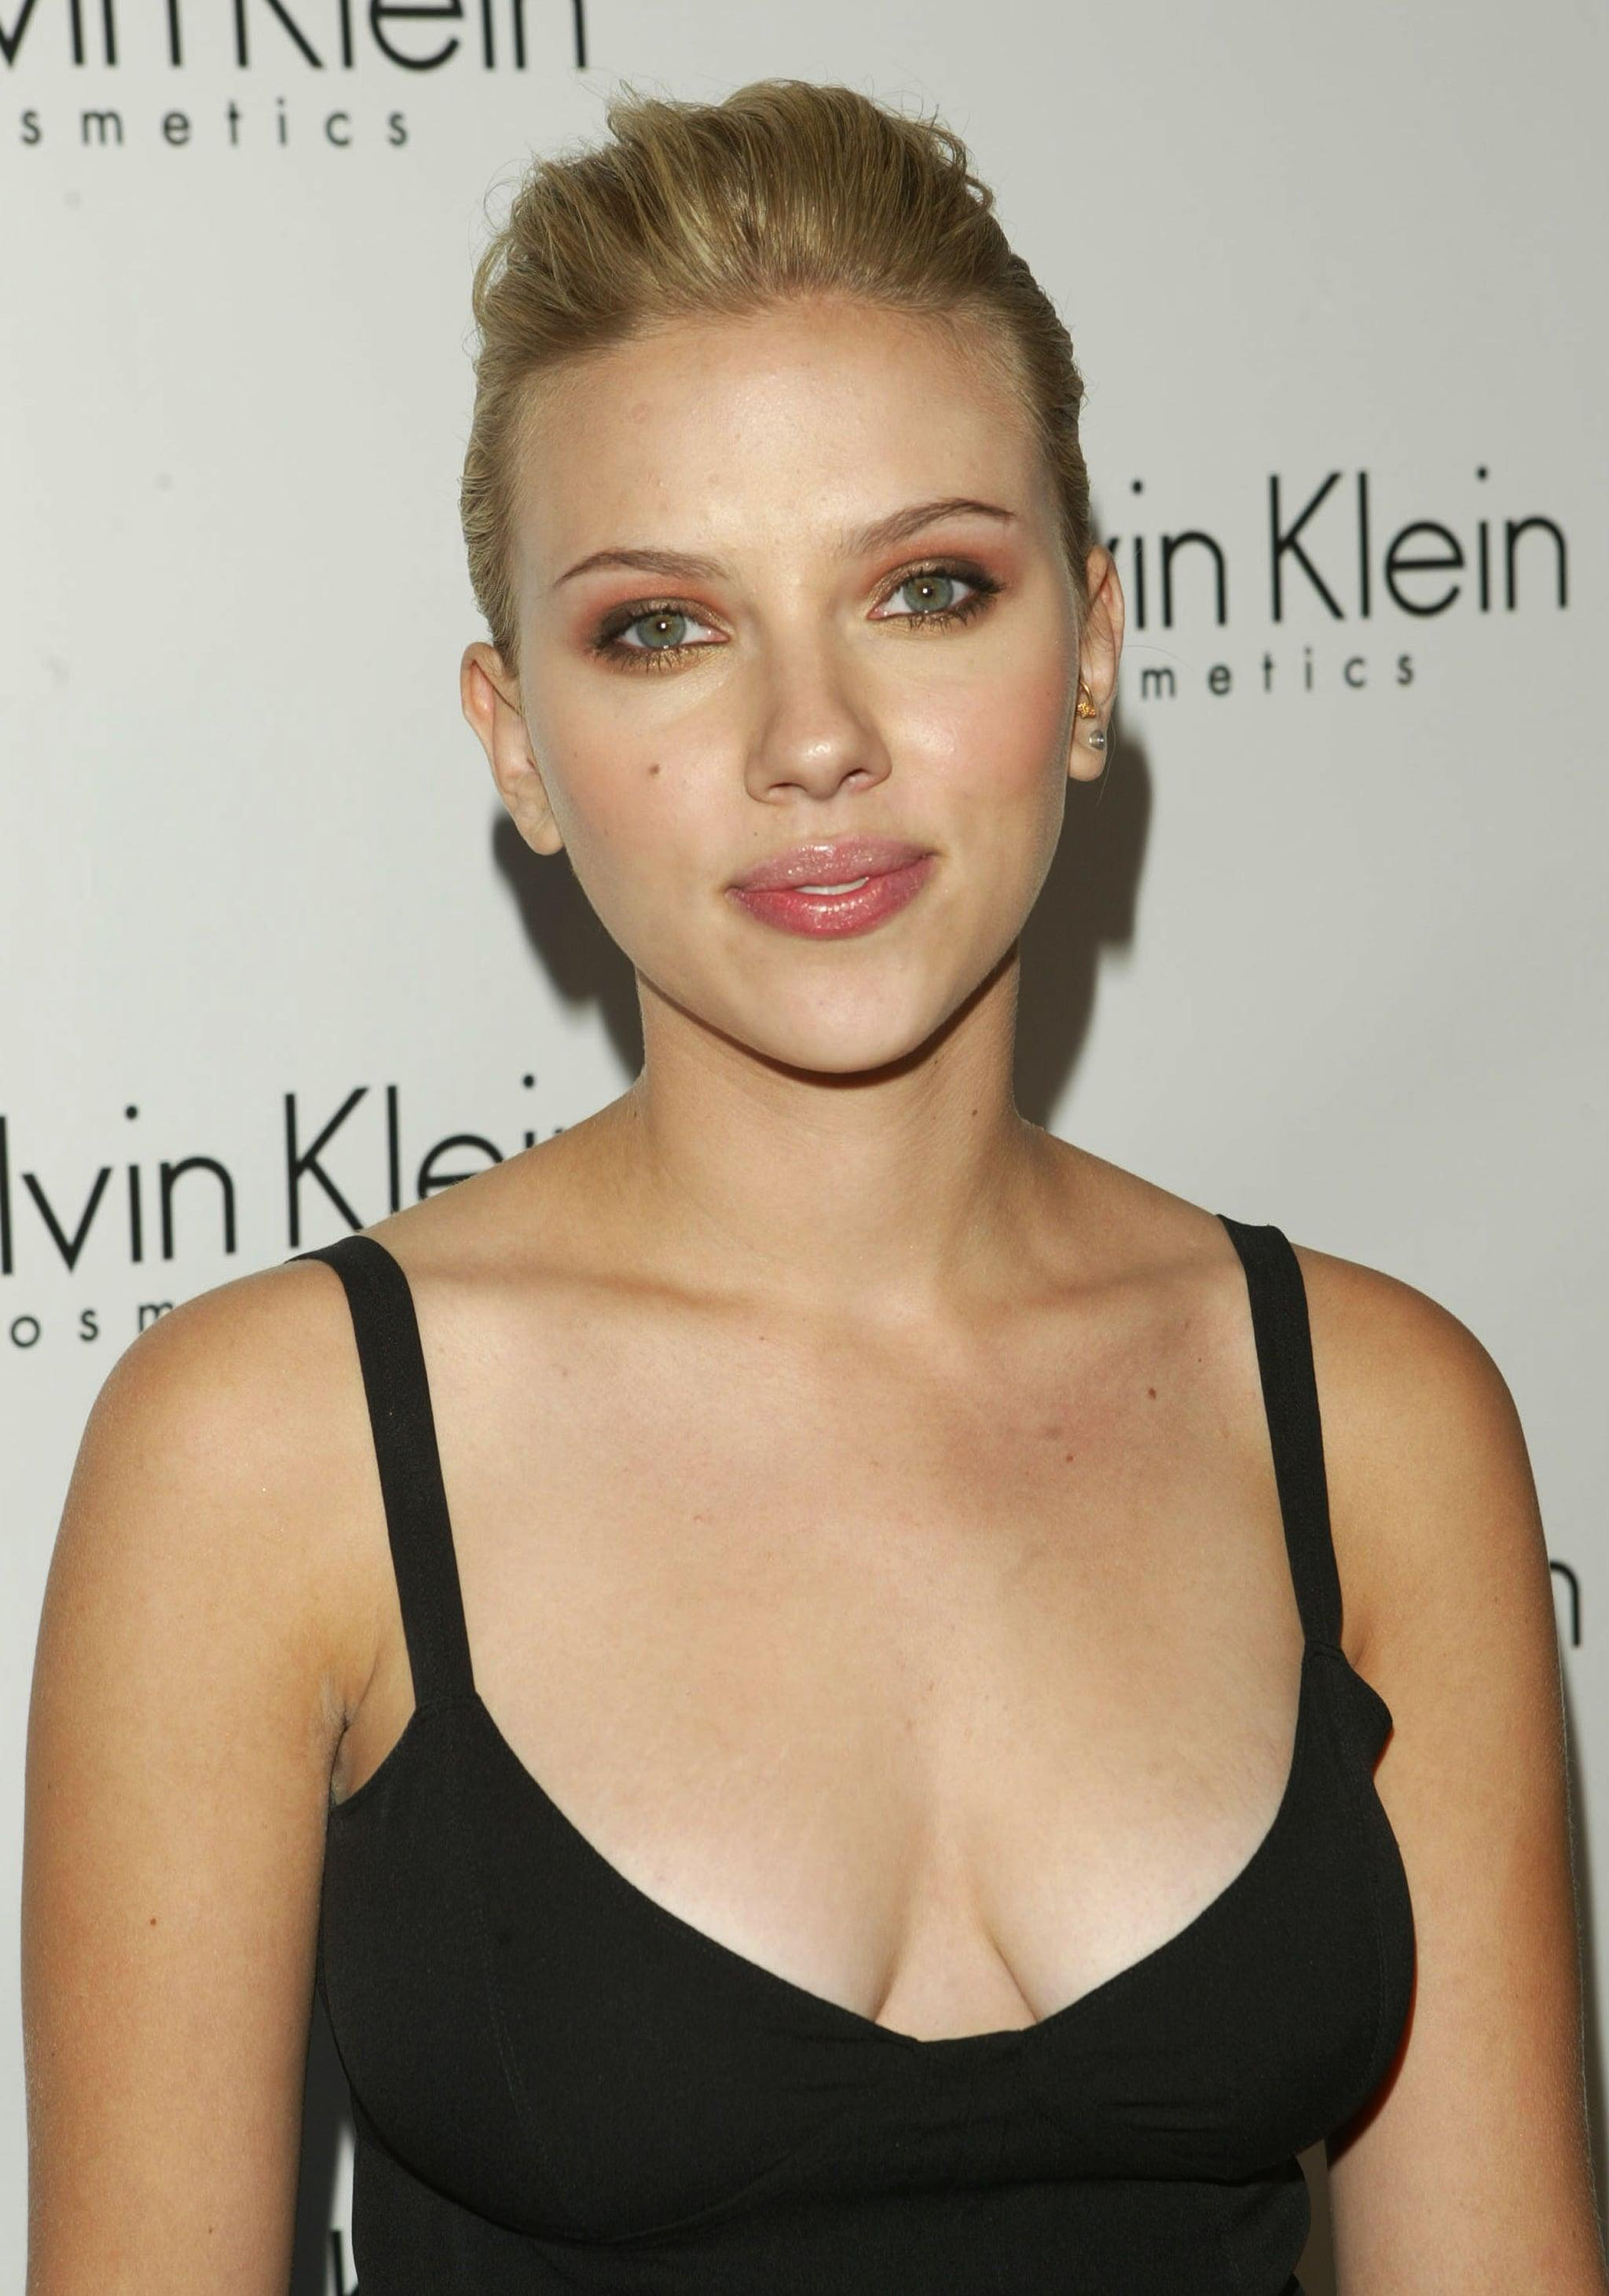 These Insanely Sexy Scarlett Johansson Pictures Will Stop You In